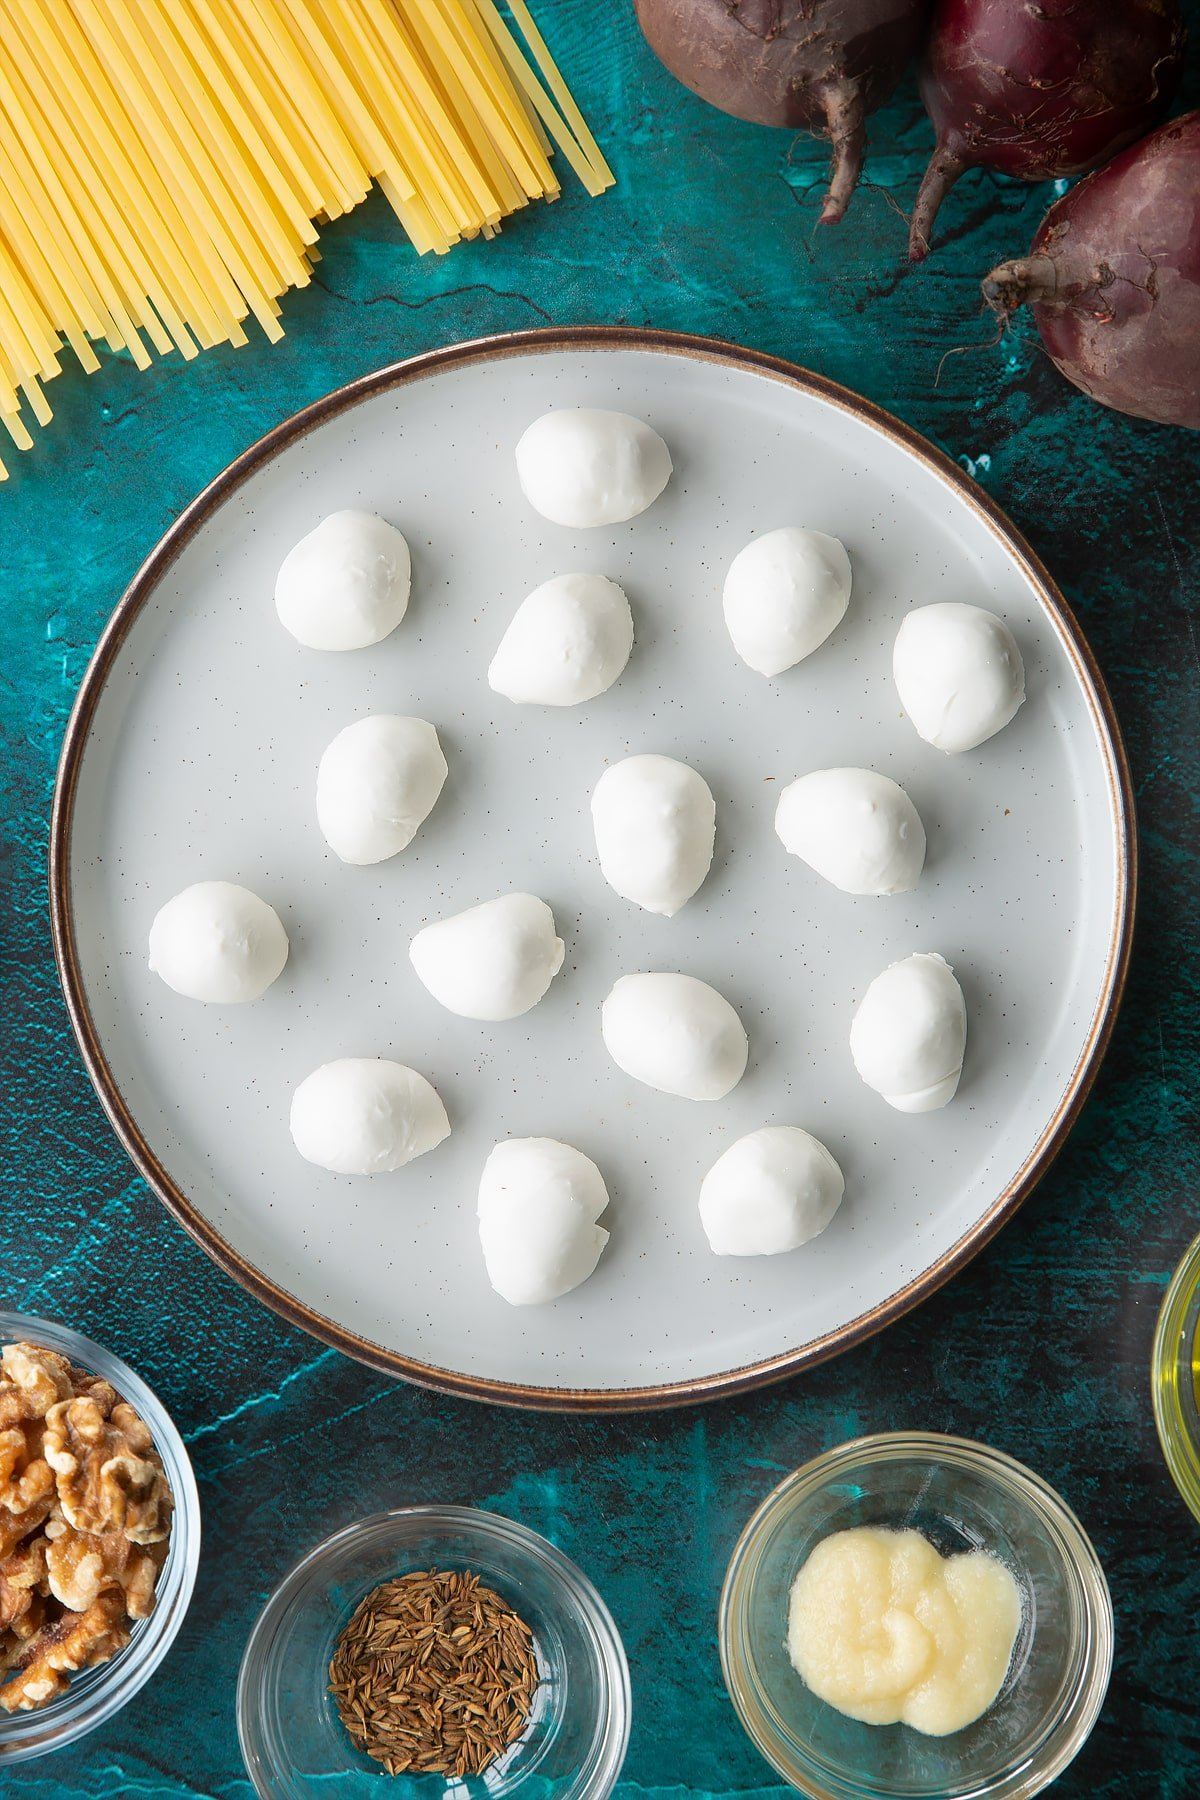 Mozzarella pearls on a plate. Ingredients to make a Halloween pasta recipe surround the plate.